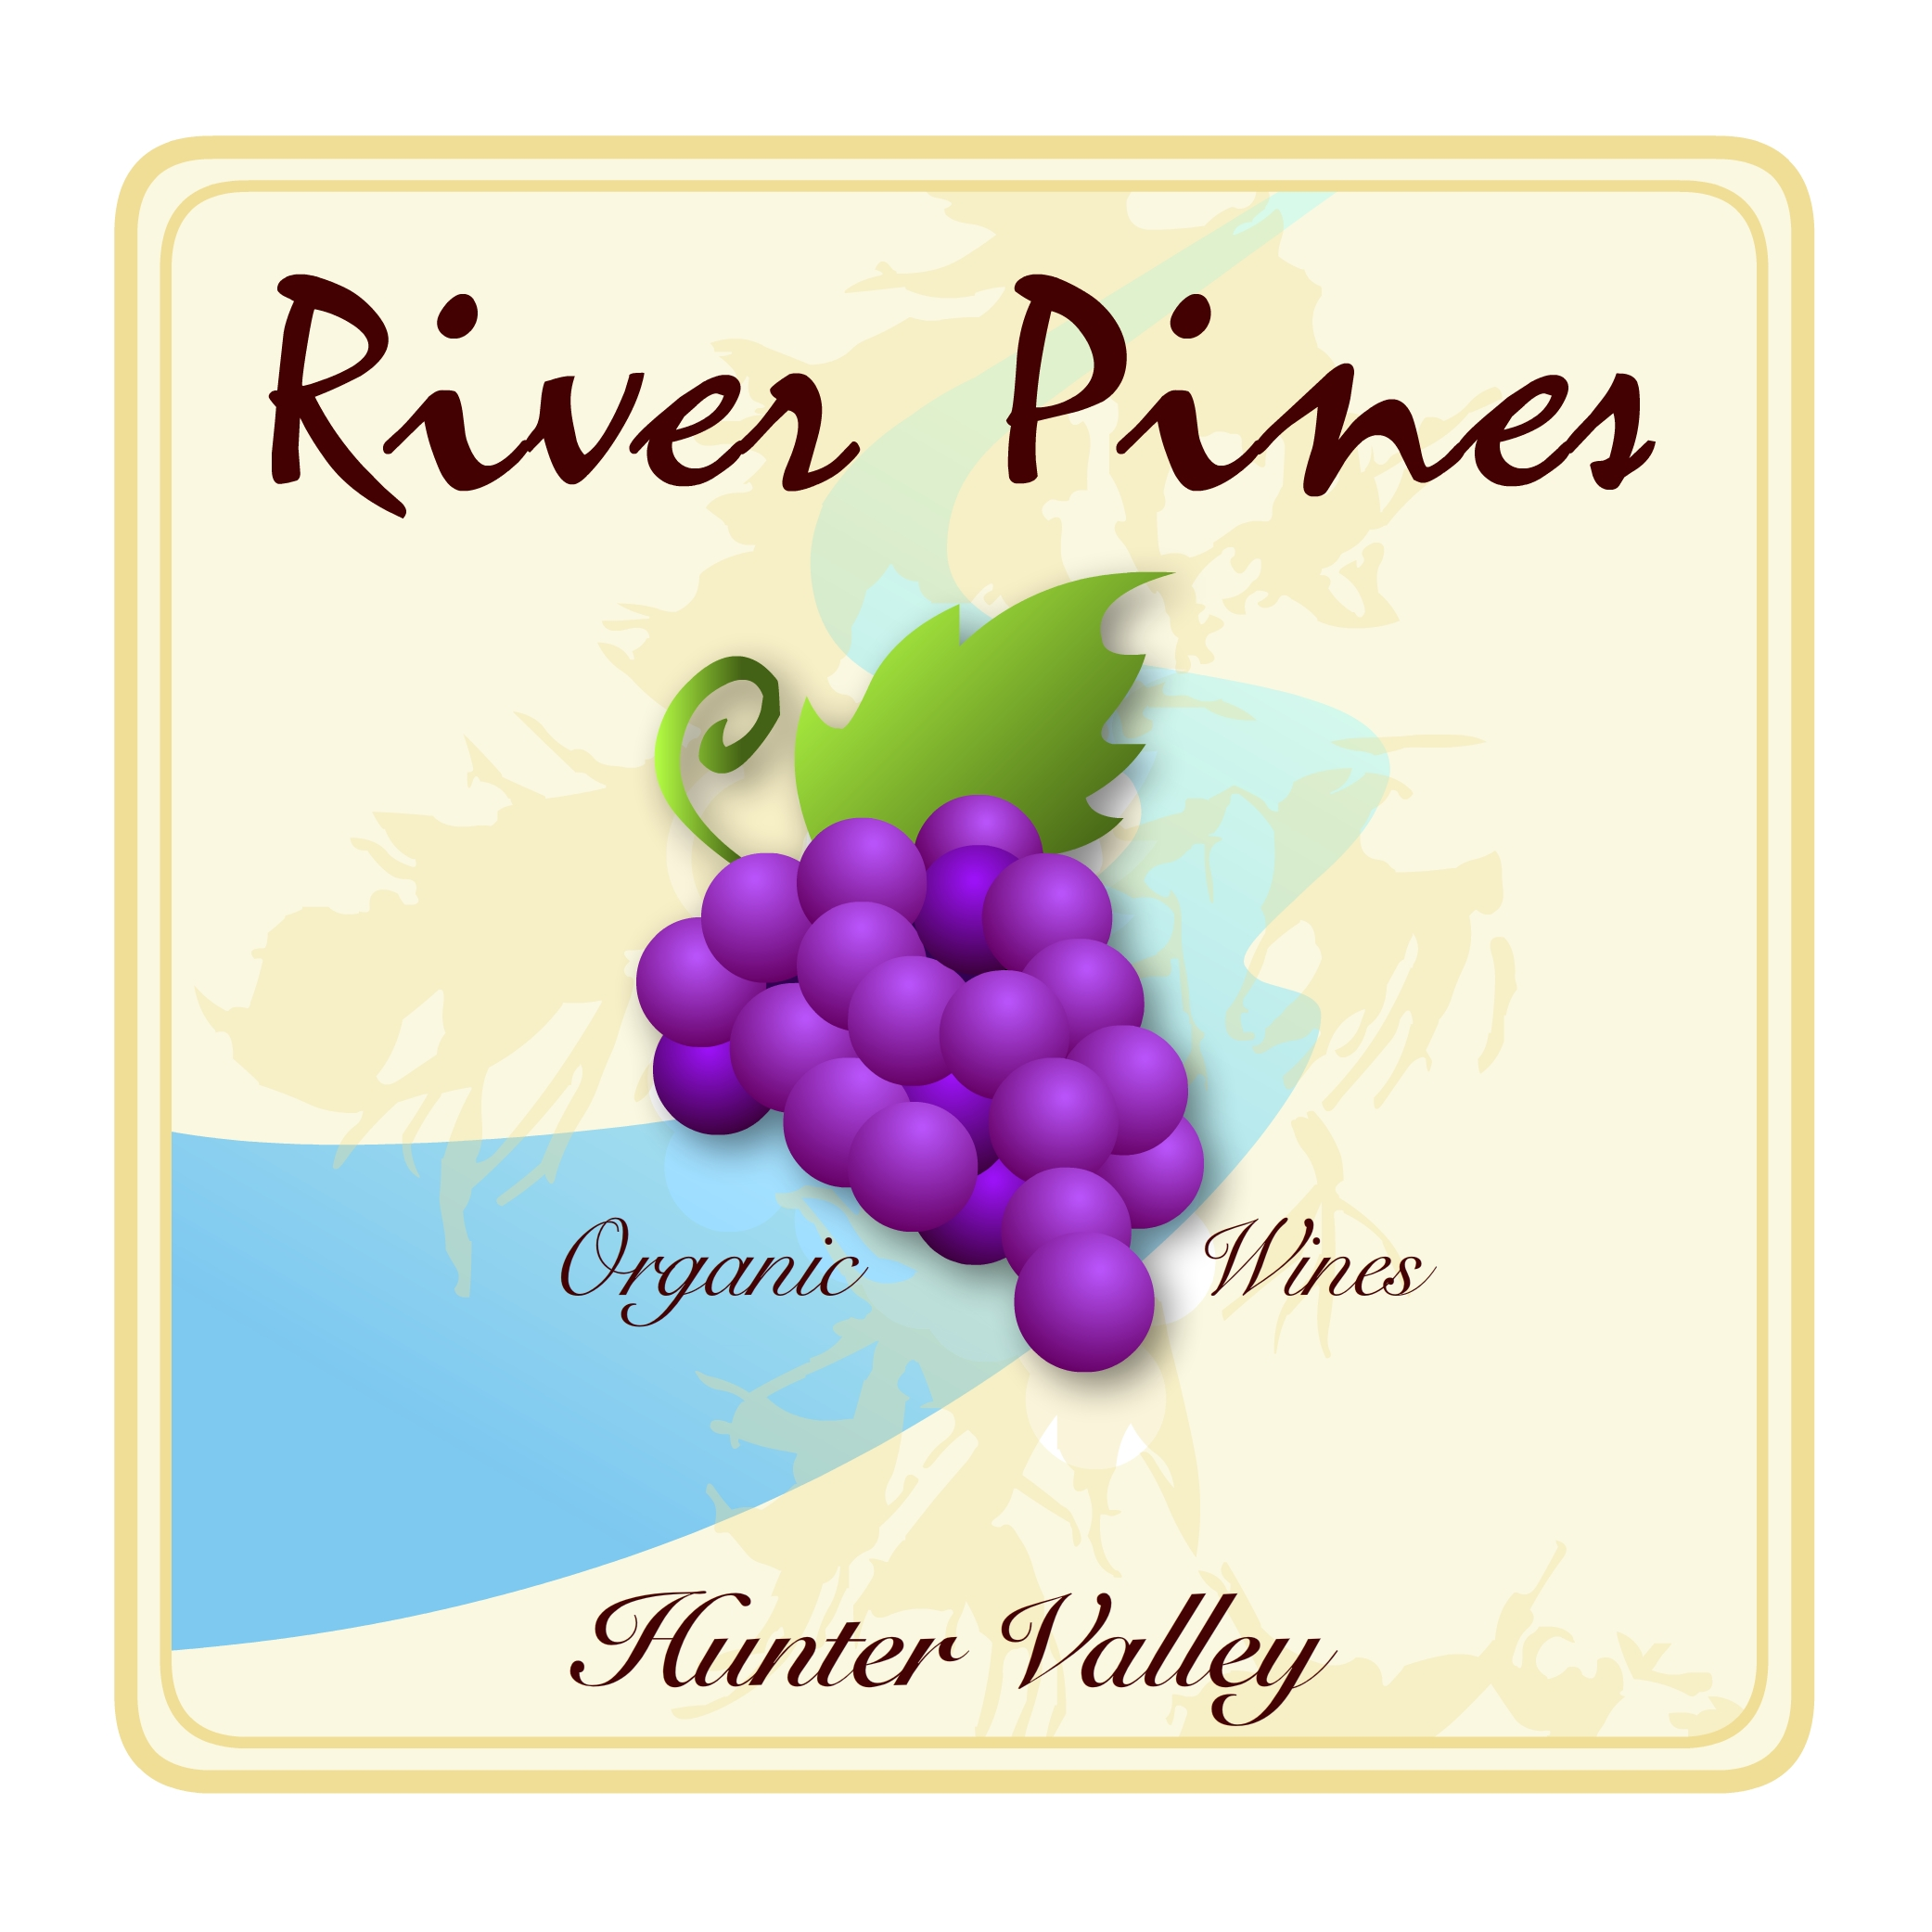 RIVER PINES WINE